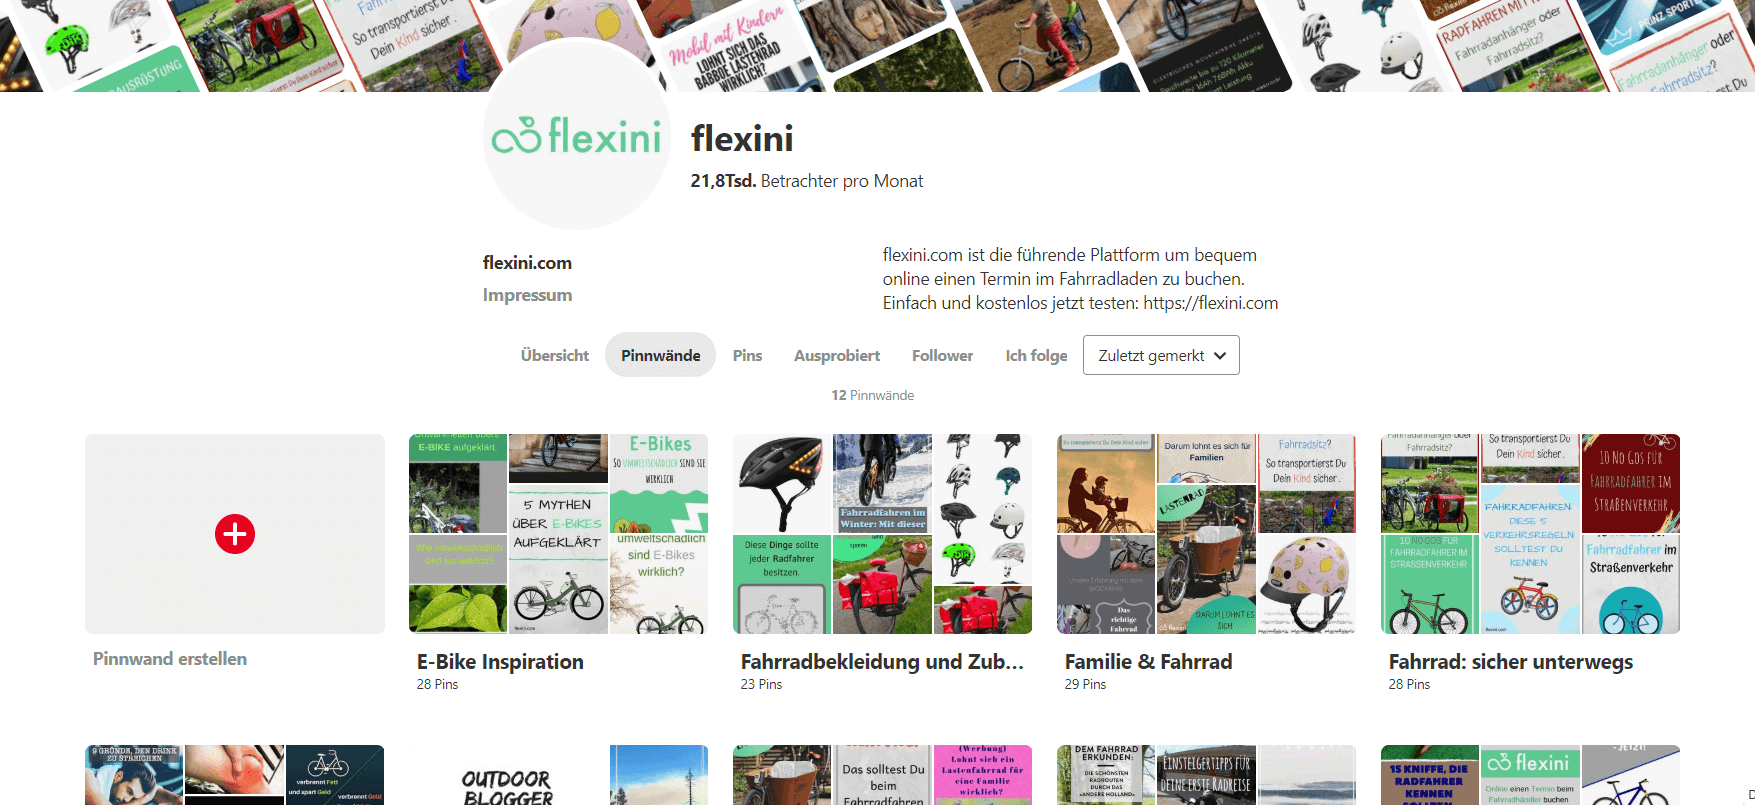 flexini pinterest